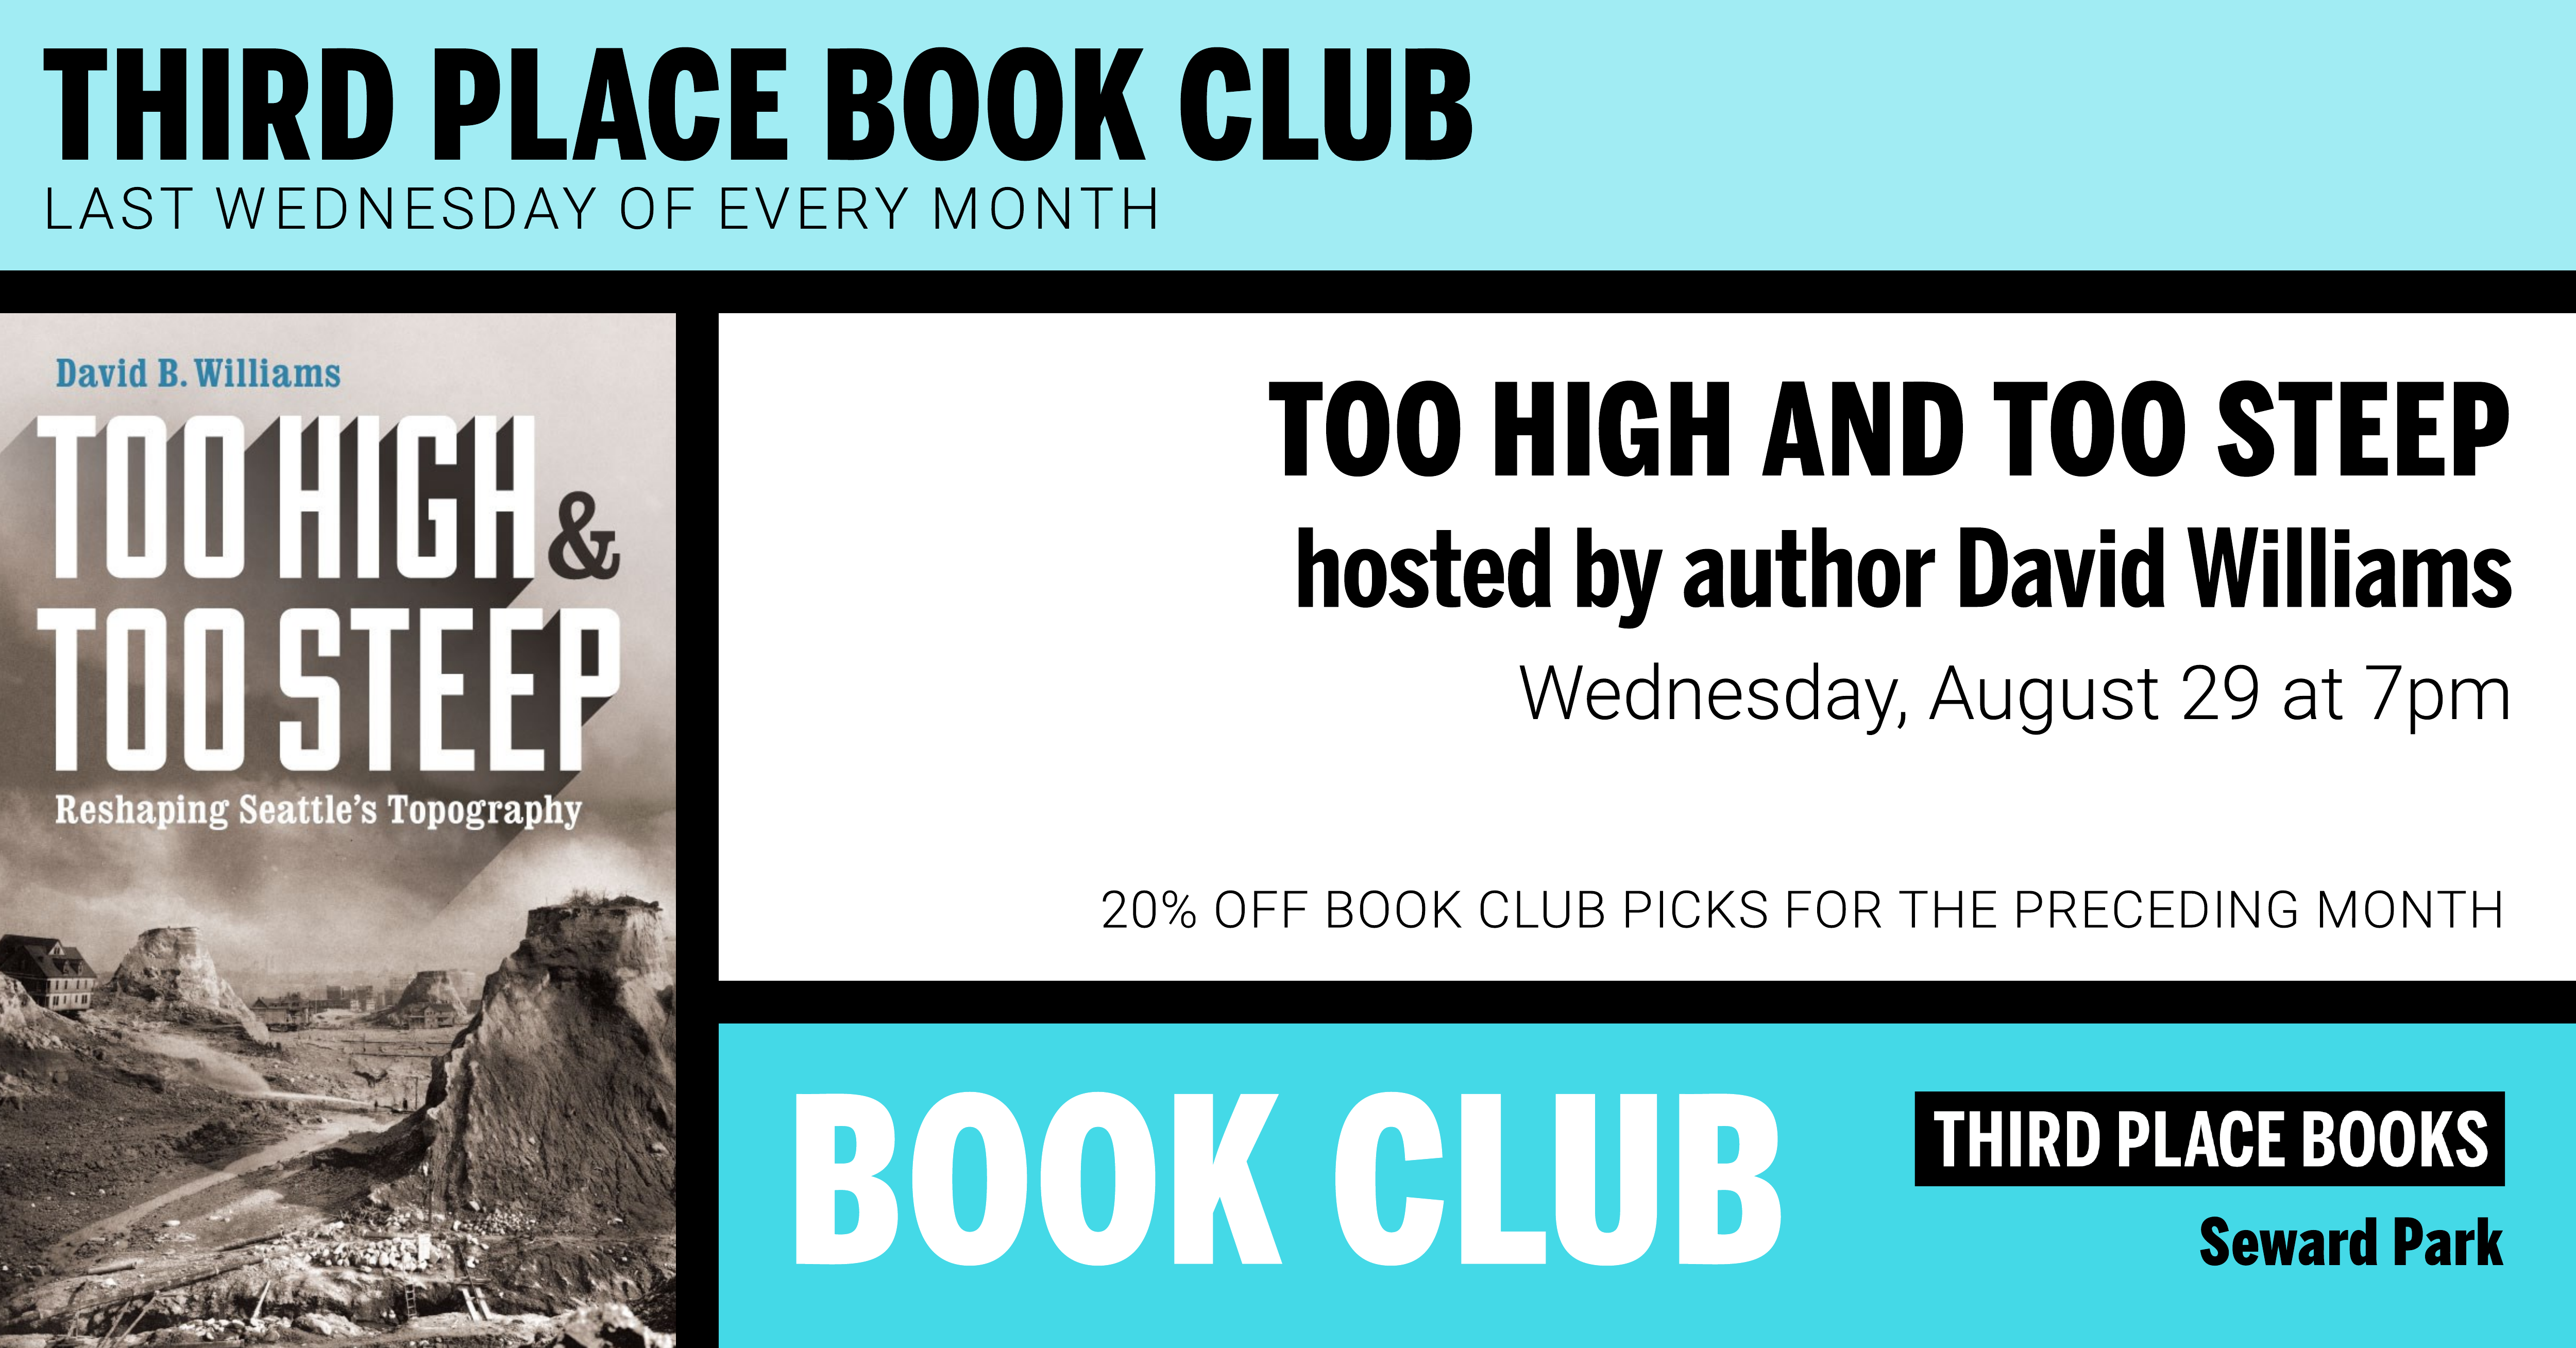 Third Place Book Club hosted David B. WIlliams reading Too High & Too Steep on Wednesday, August 29 at 7pm